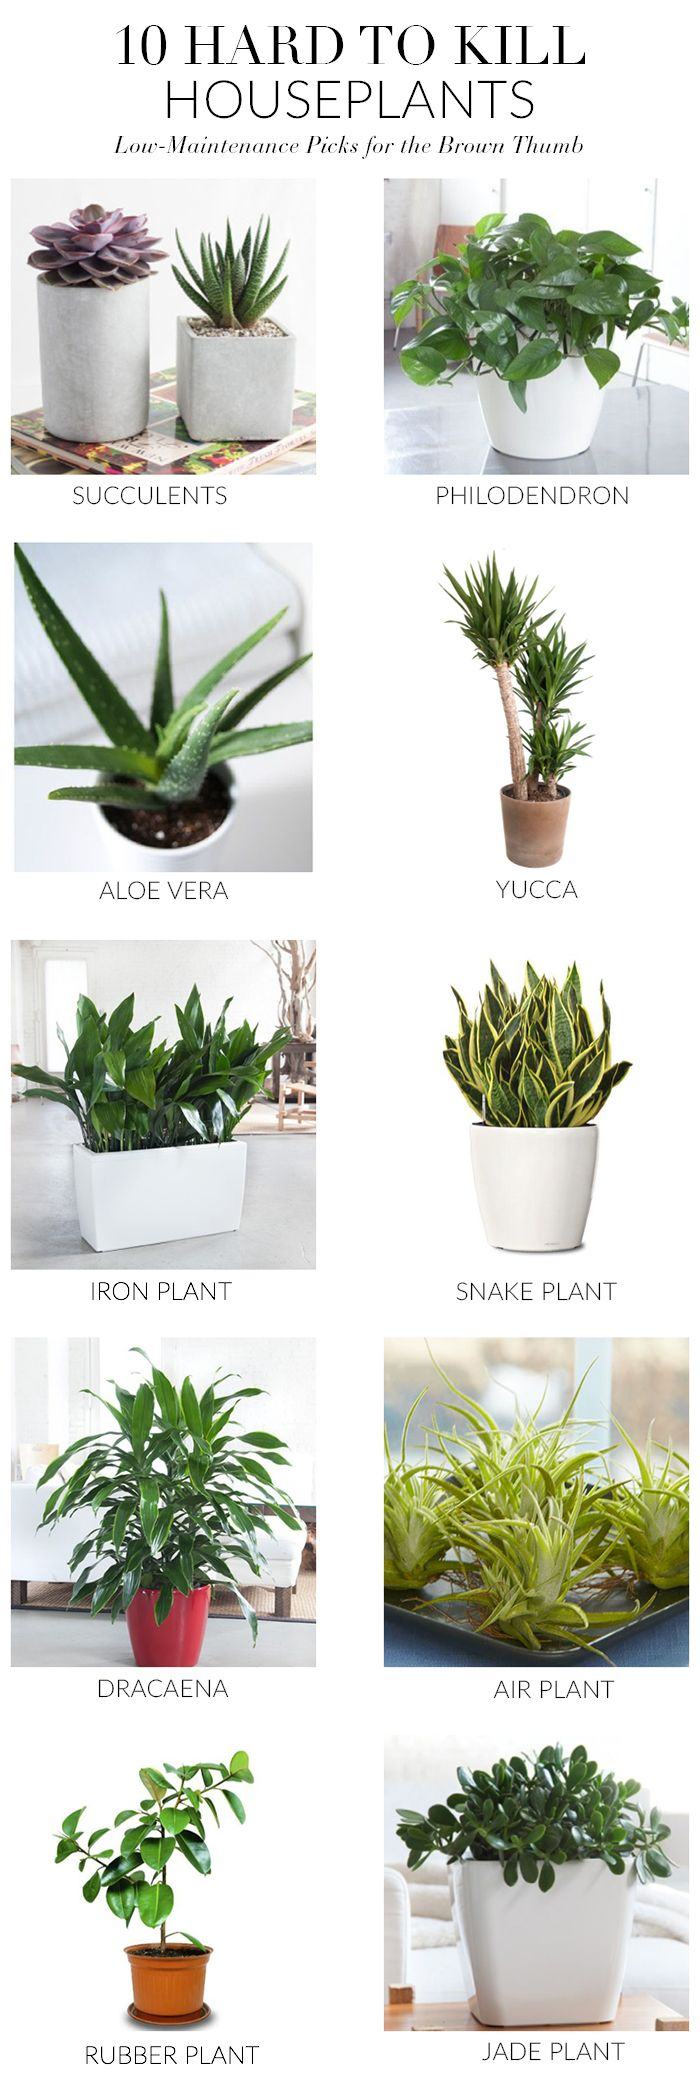 Jade plants need full sun in order to grow properly and need to be drained well. Allow the soil to dry out completely before each watering. Softening leaves indicate it's time for more water. cast iron plants can handle low light, extreme temperatures